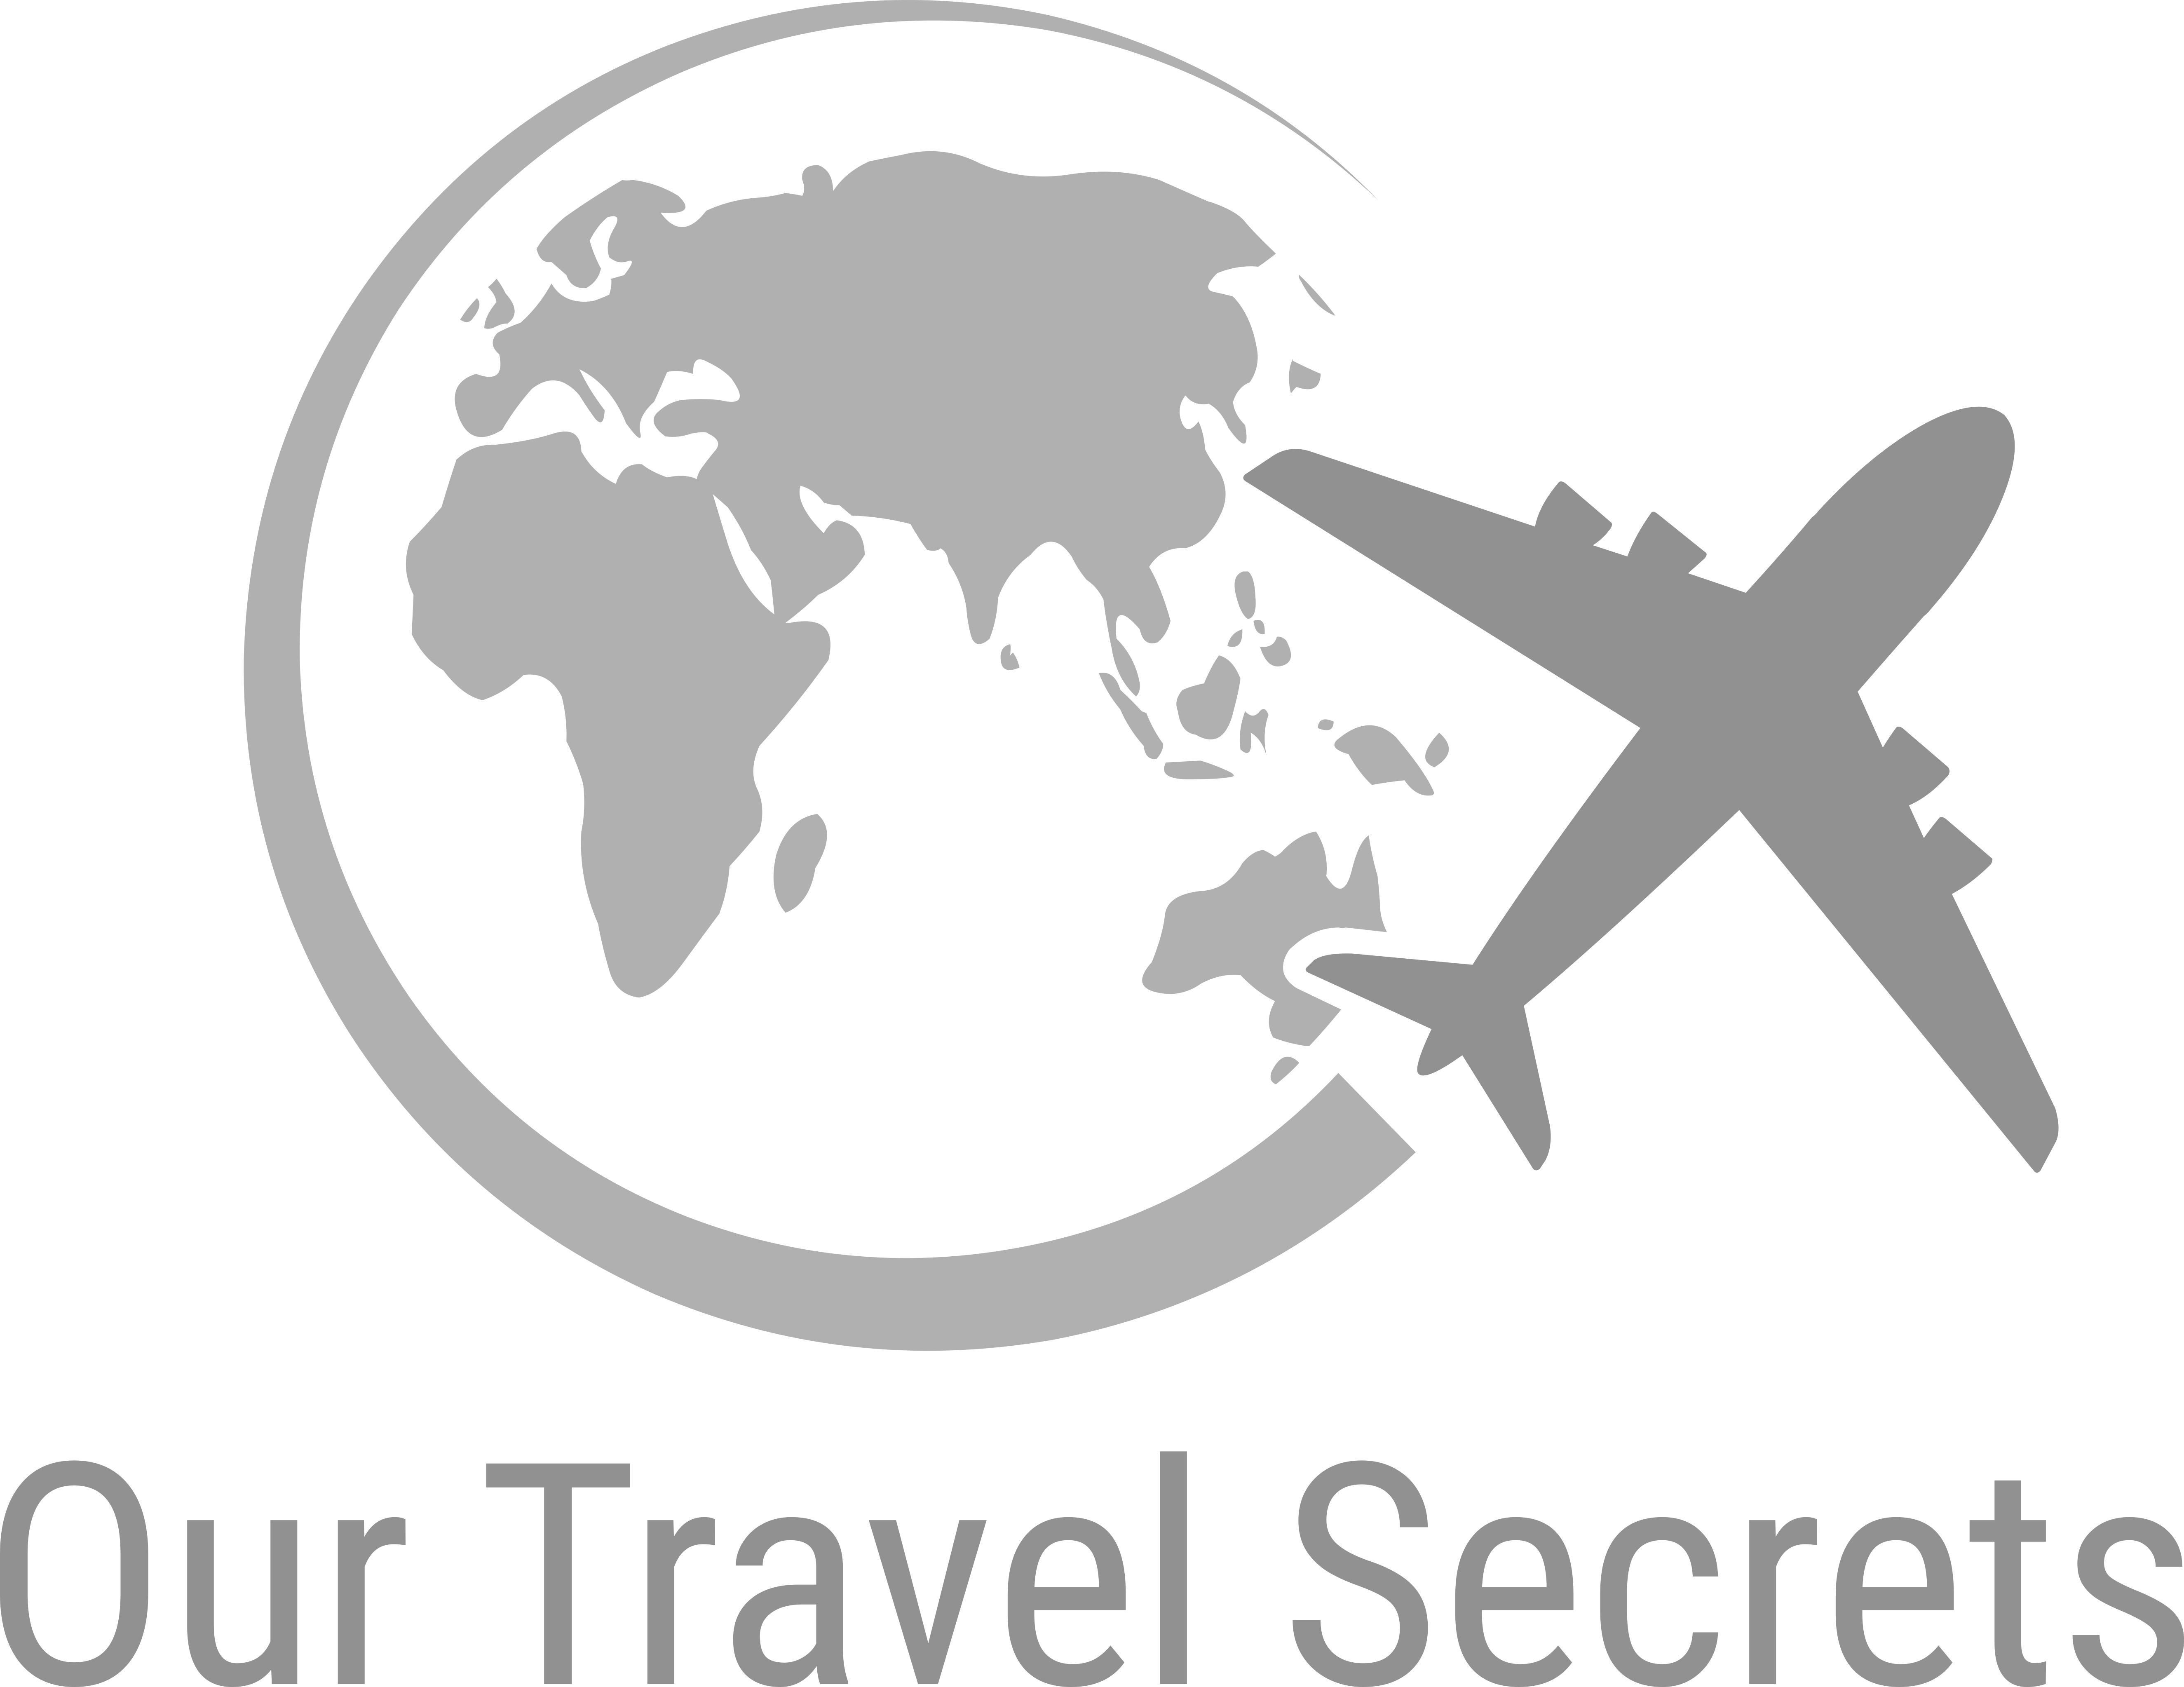 Our Travel Secrets